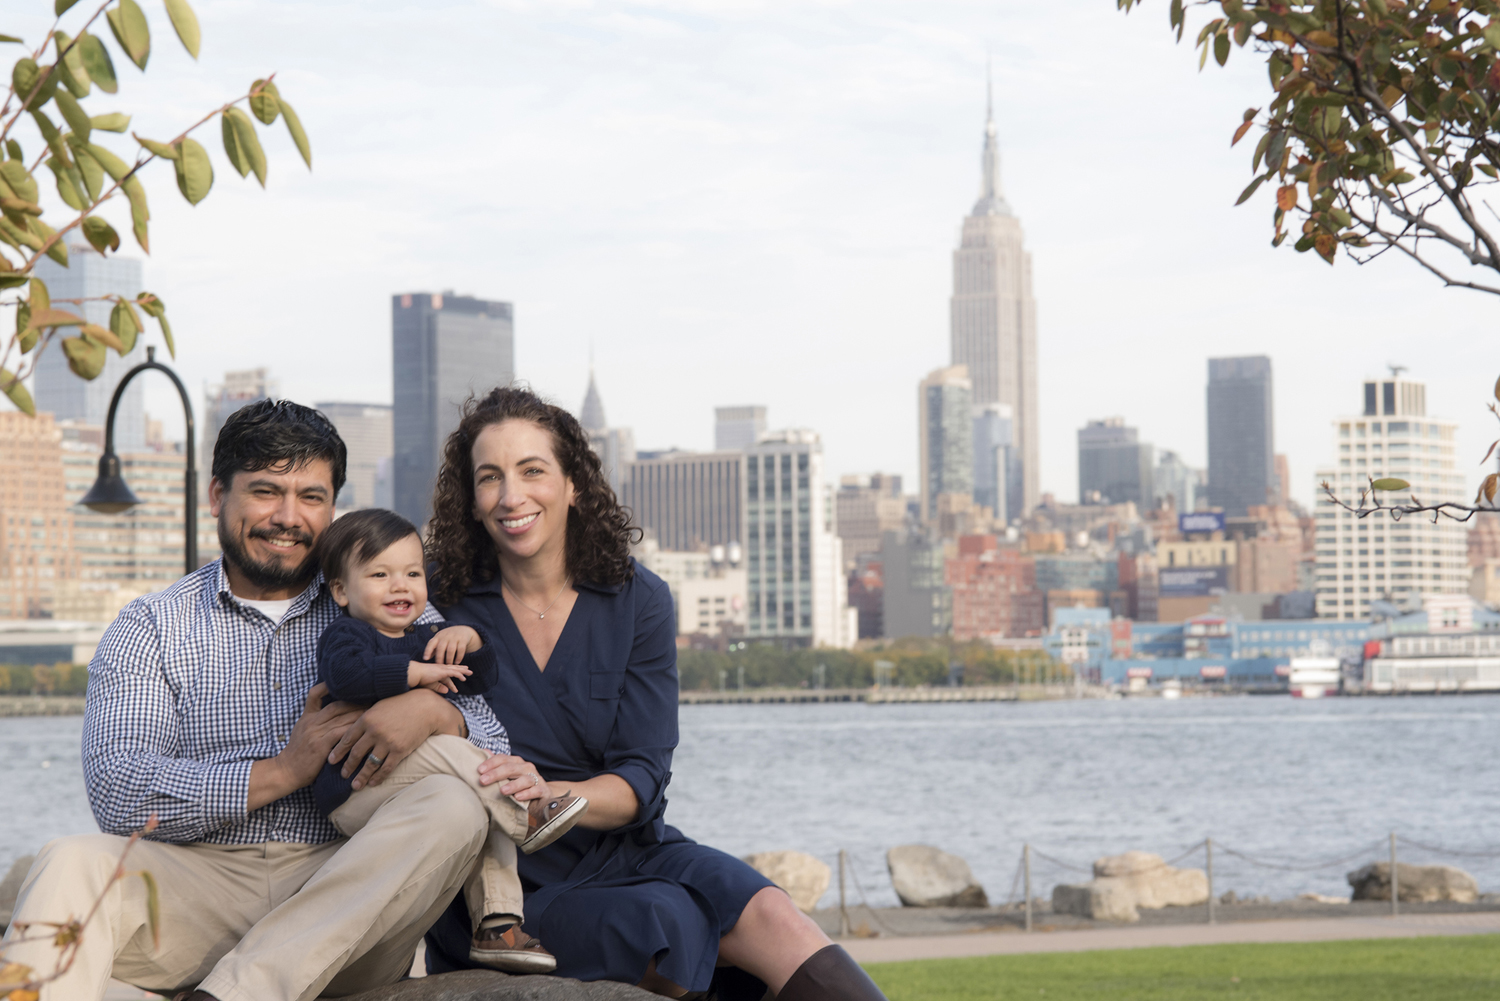 Family of three in Hoboken against the NYC skyline for their family photos